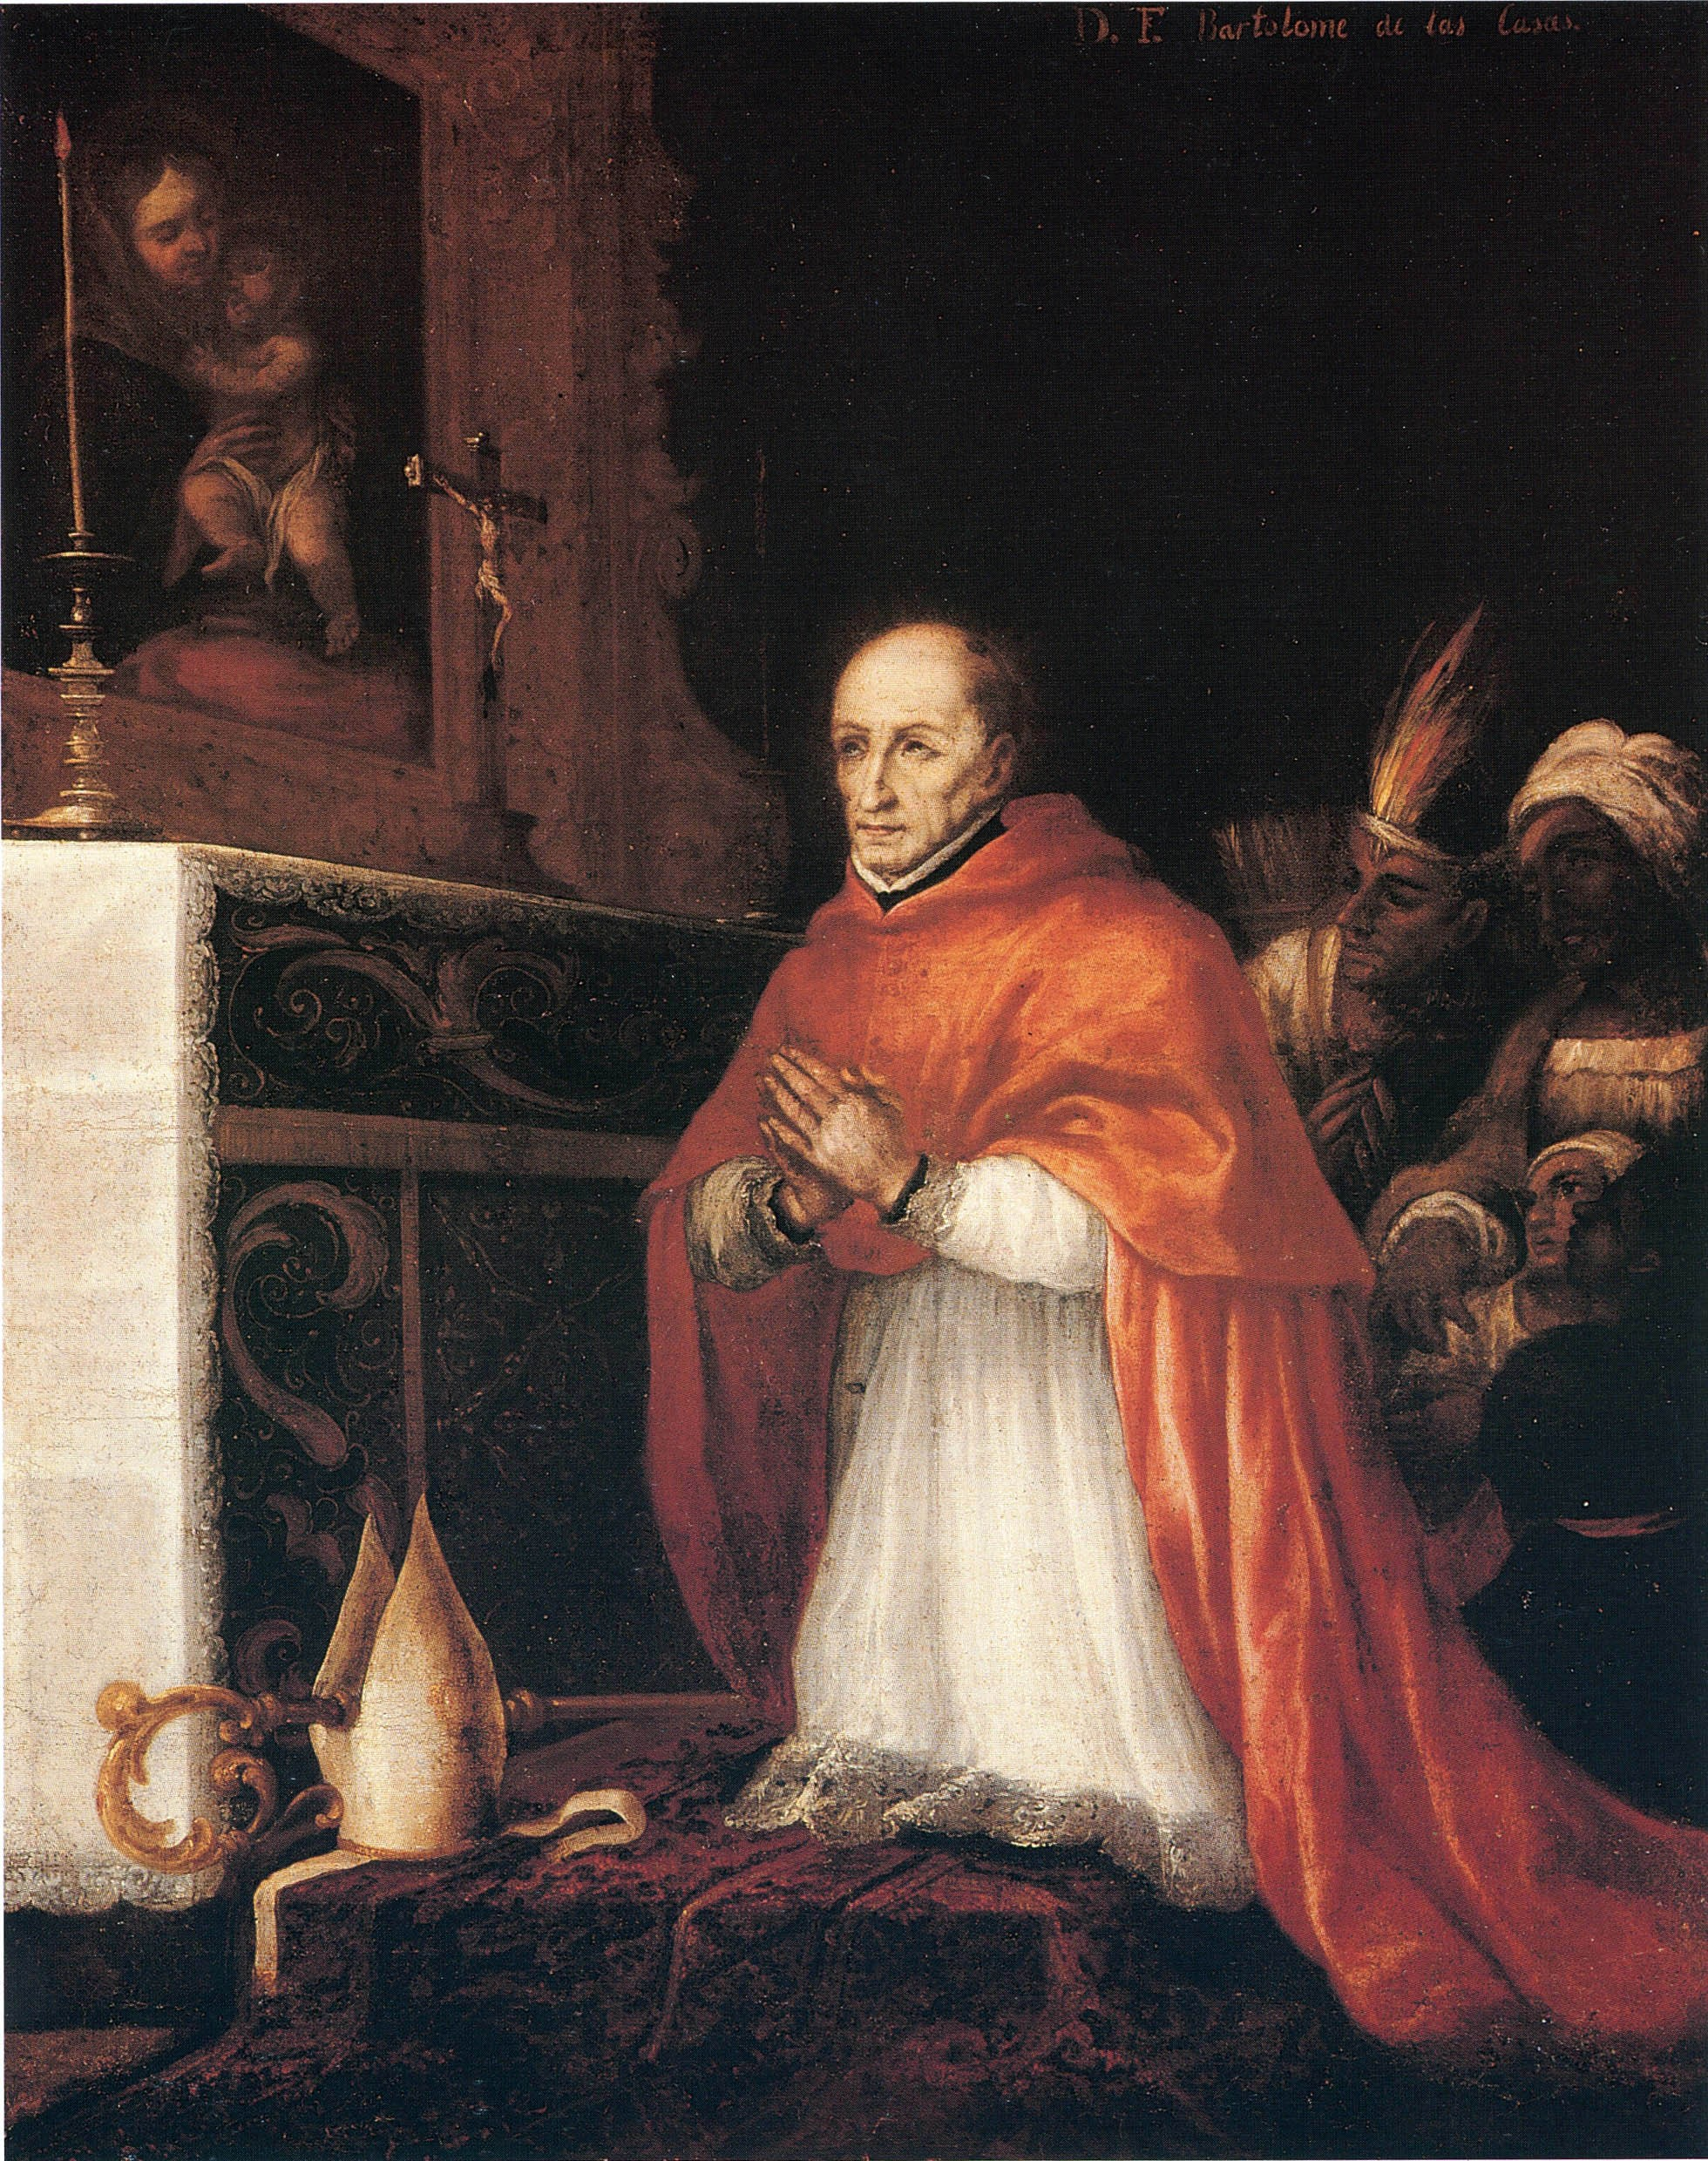 Saint Turibius of Mogrovejo